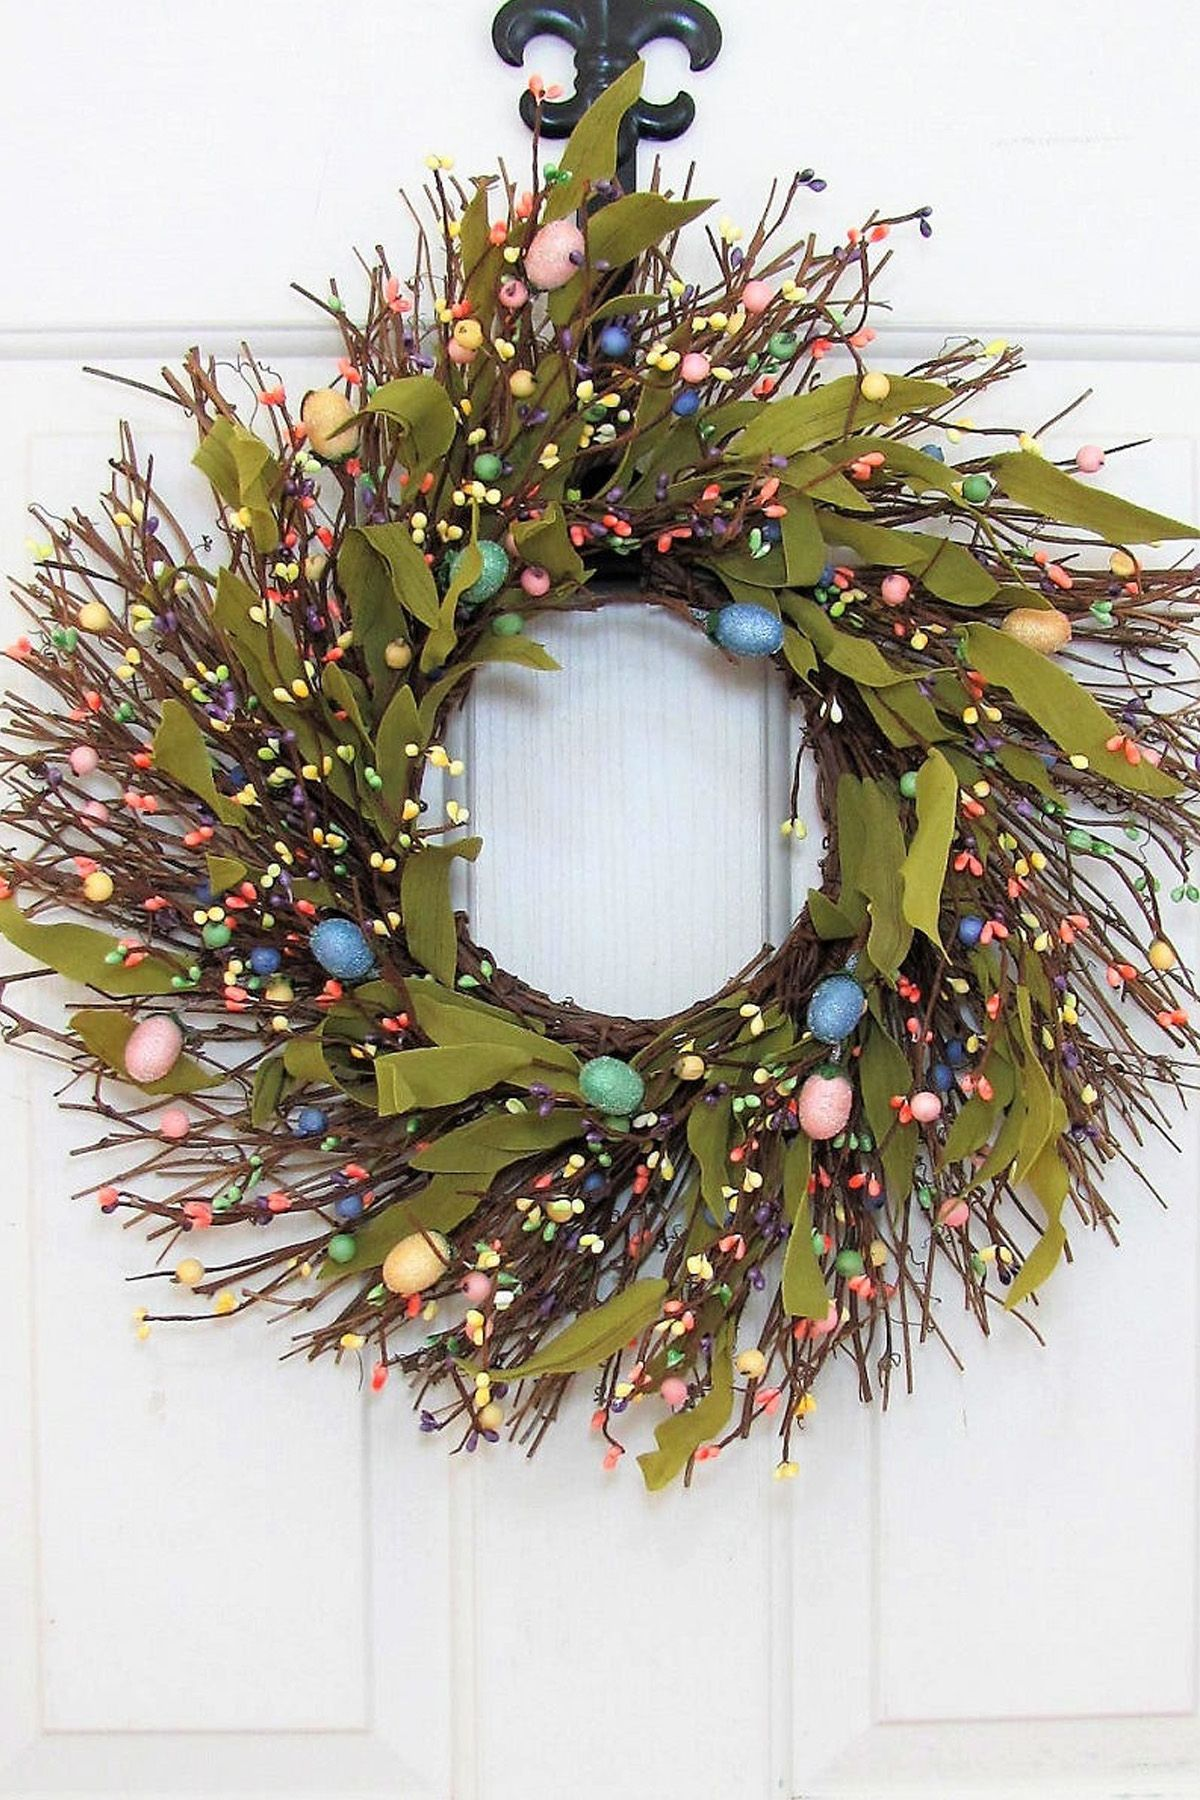 35 Spring Wreaths Easter & Spring Door Decorations Ideas